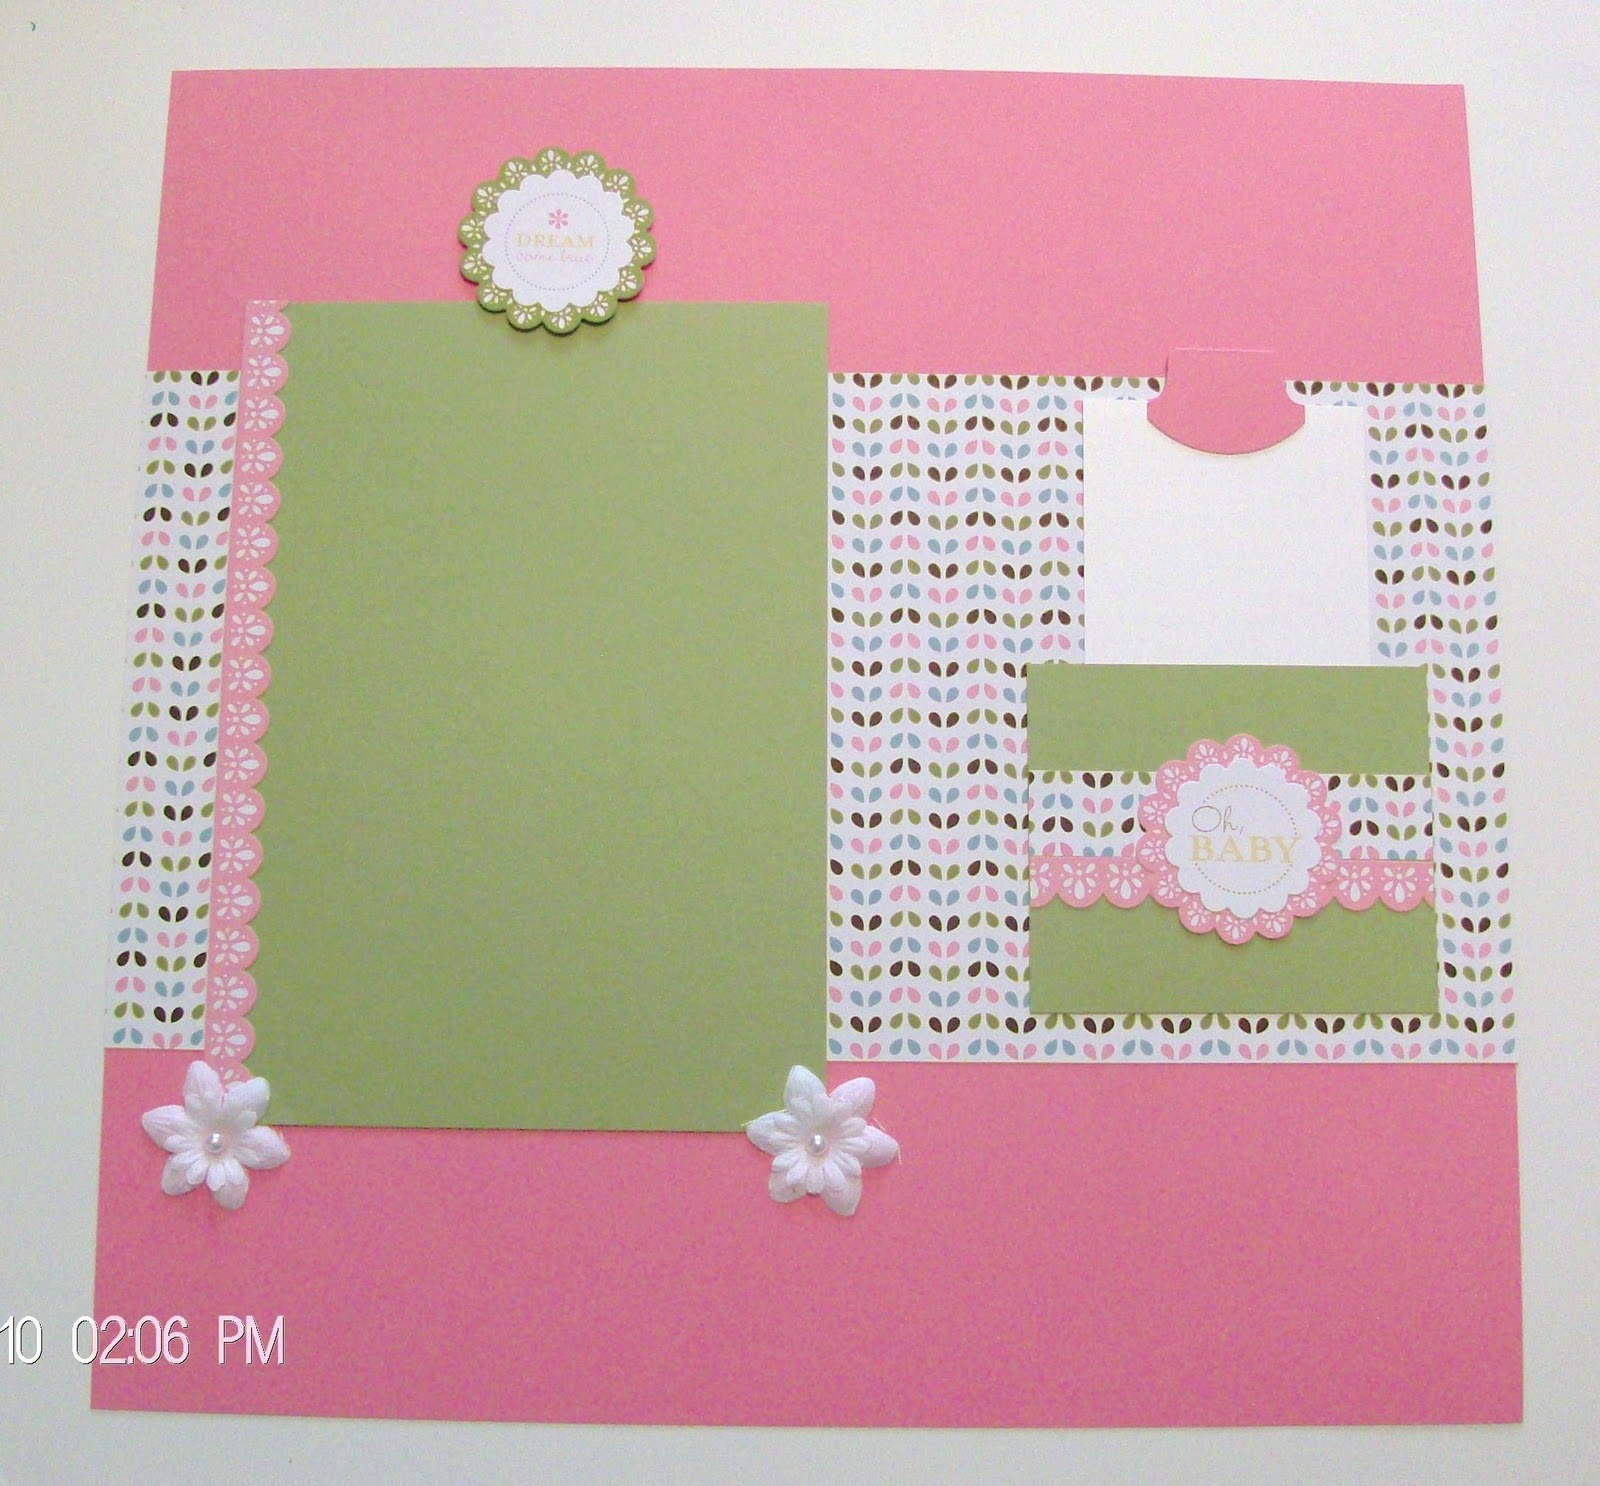 Baby girl scrapbook ideas - The Quick Accents Includes 2 Sheets Of Heavyweight Self Adhesive Die Cuts Which Makes It So Easy To Complete Your Scrapbook Albums